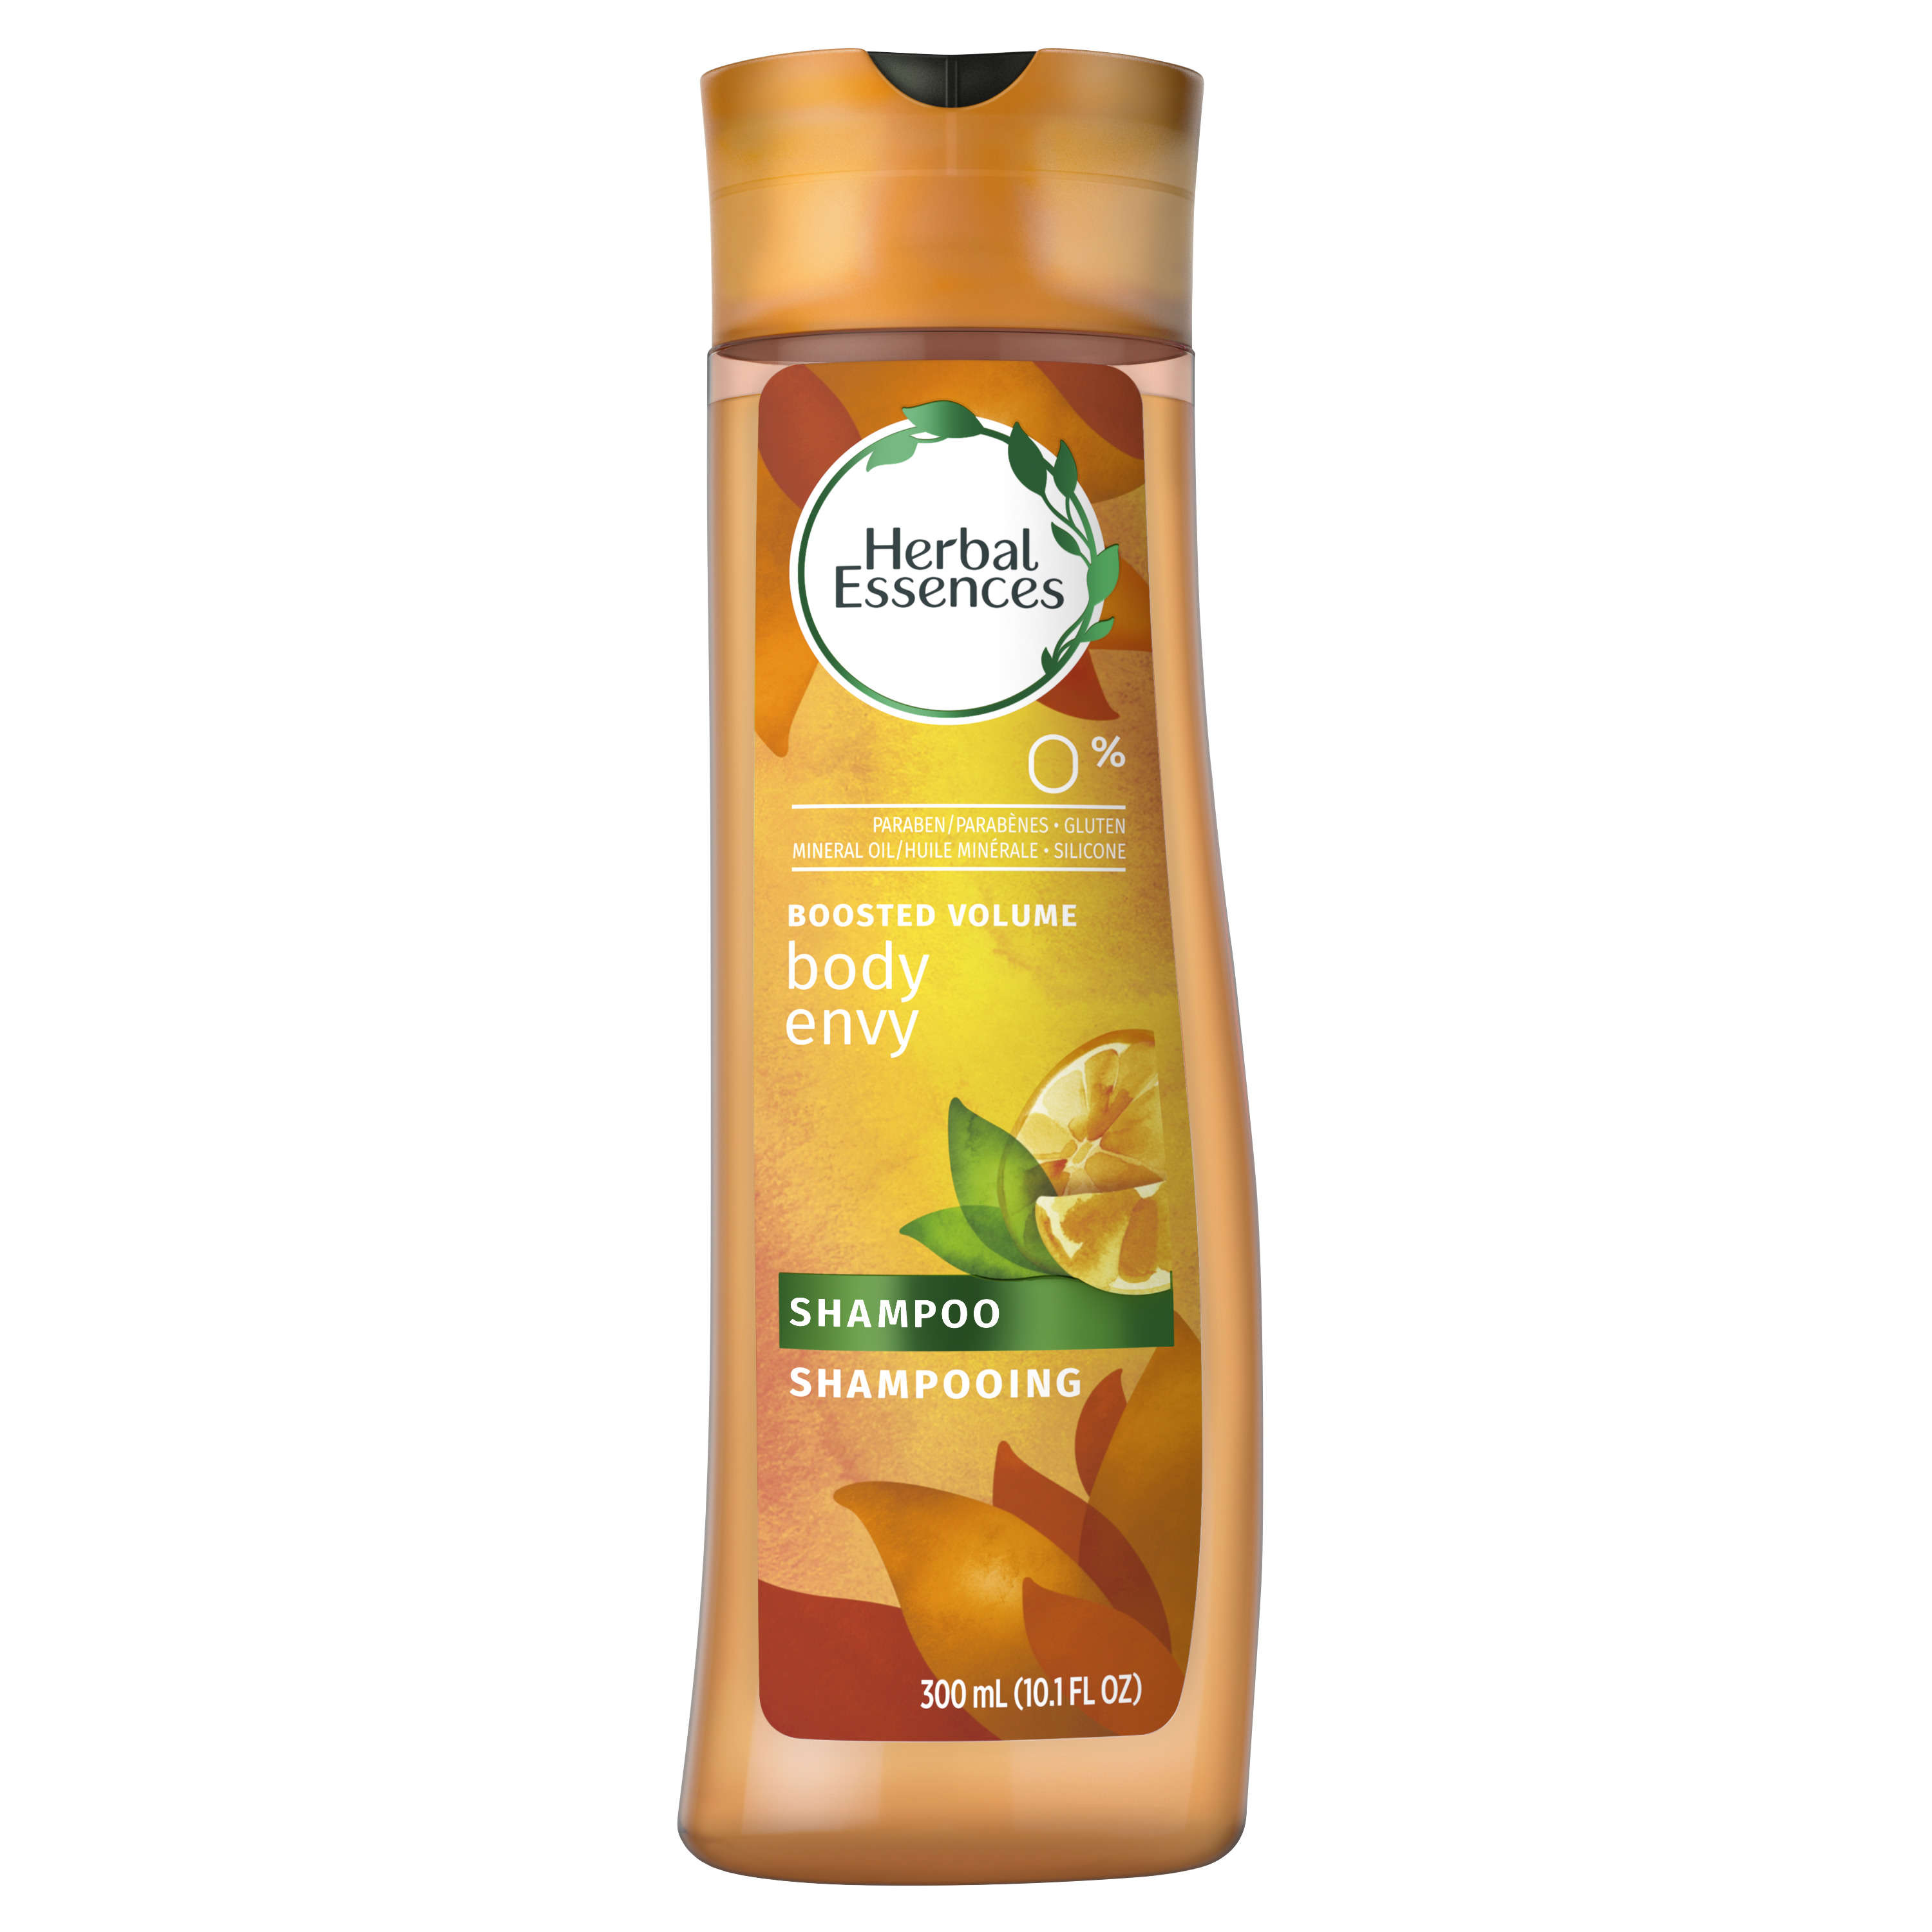 Herbal Essences Body Envy Volumizing Shampoo with Citrus Essences, 10.1 fl oz